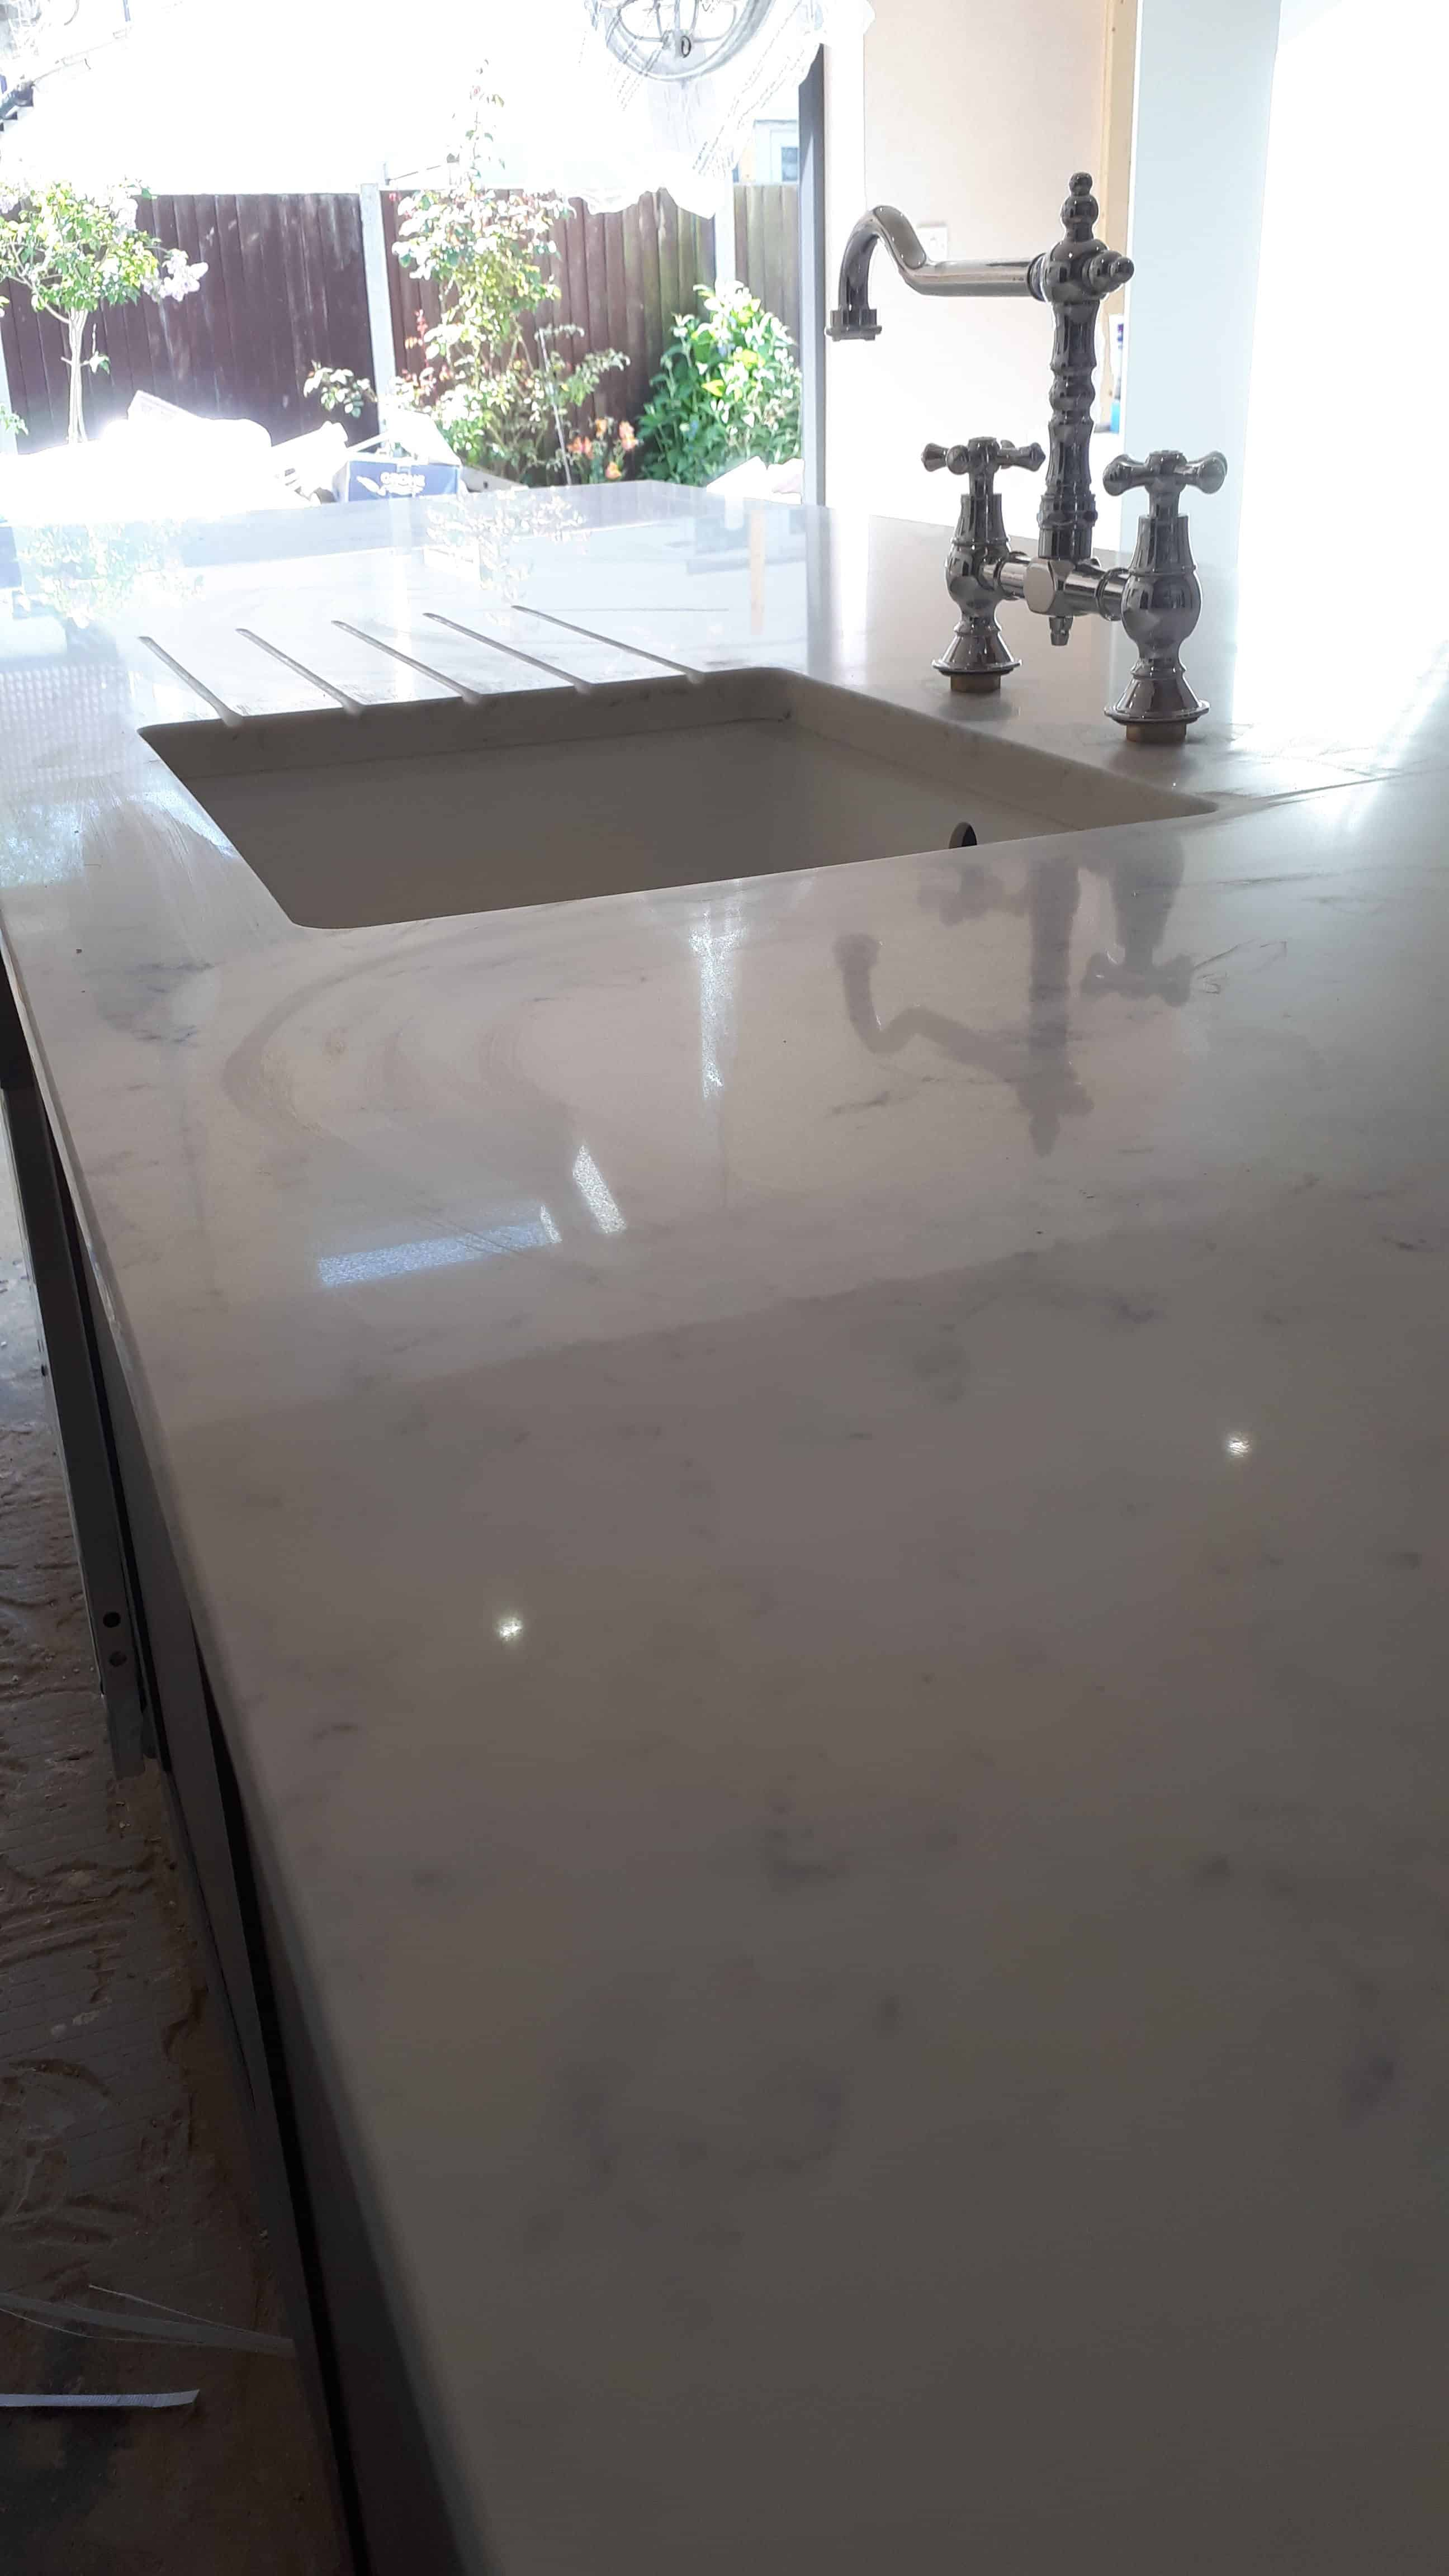 quartz worktops direct, quartz worktops direct, quartz worktops reviews, quartz worktop near me, stone worktops near me